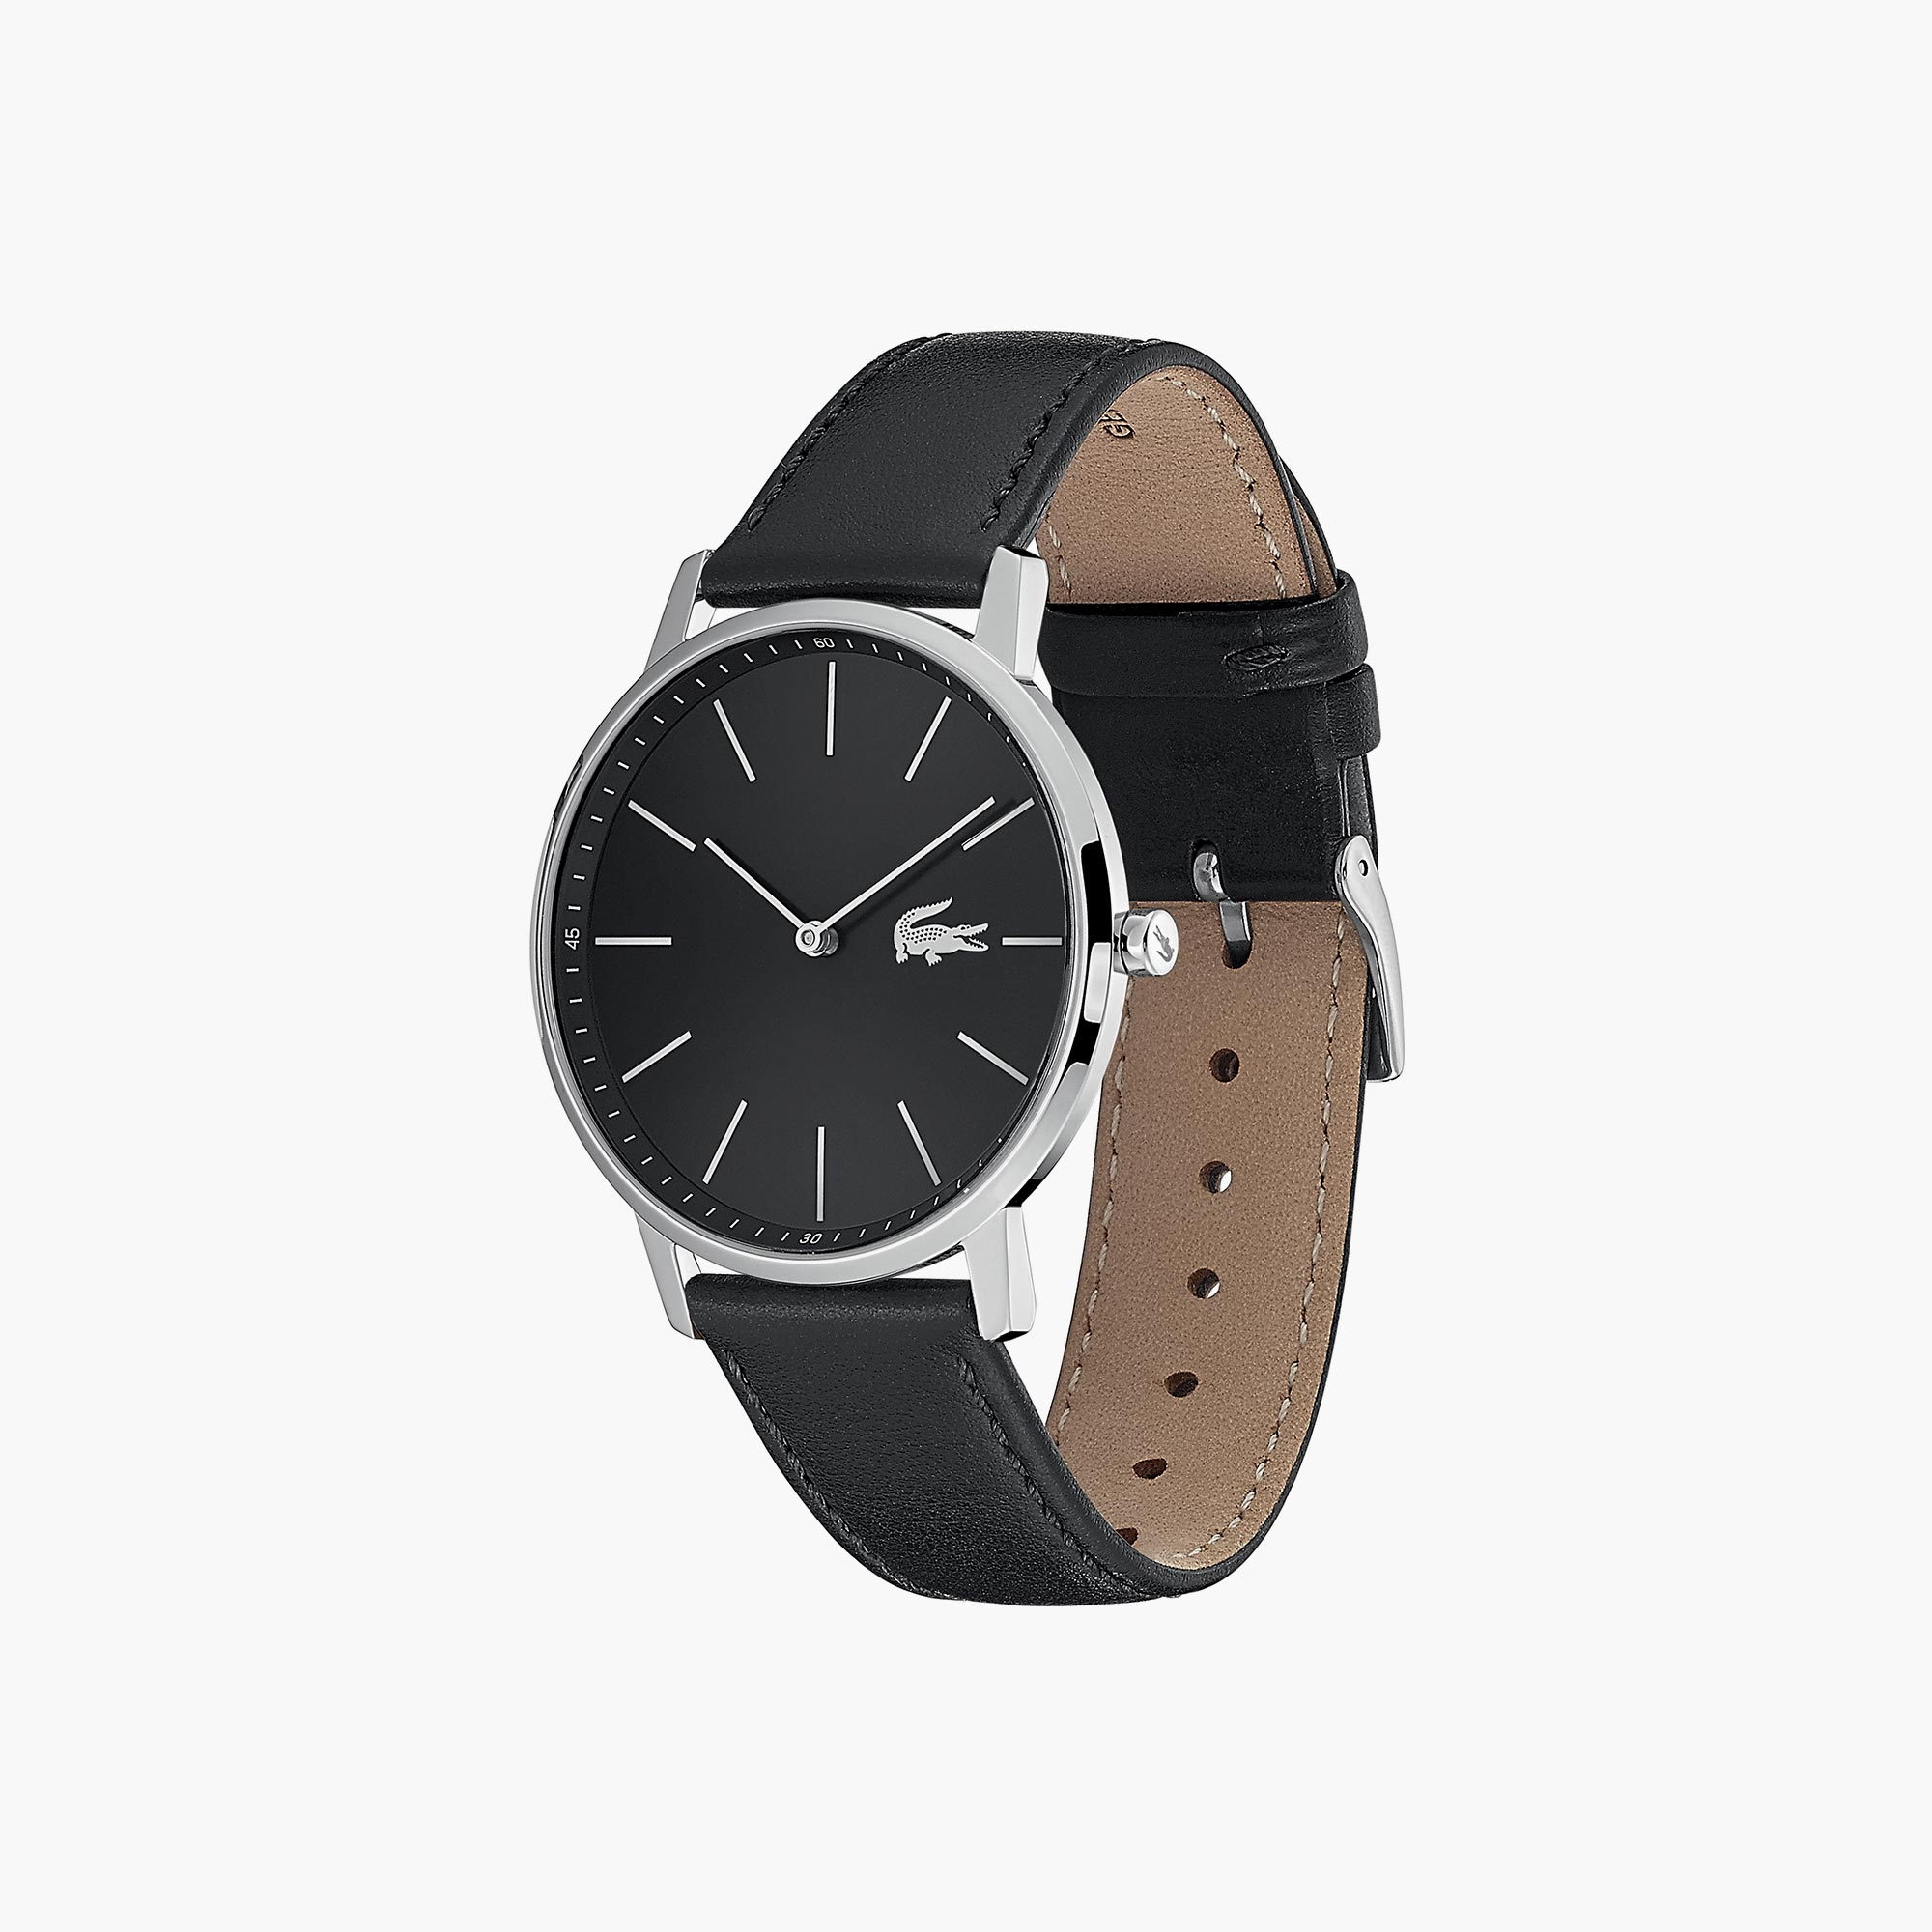 Gents Moon Watch With Black Leather Strap